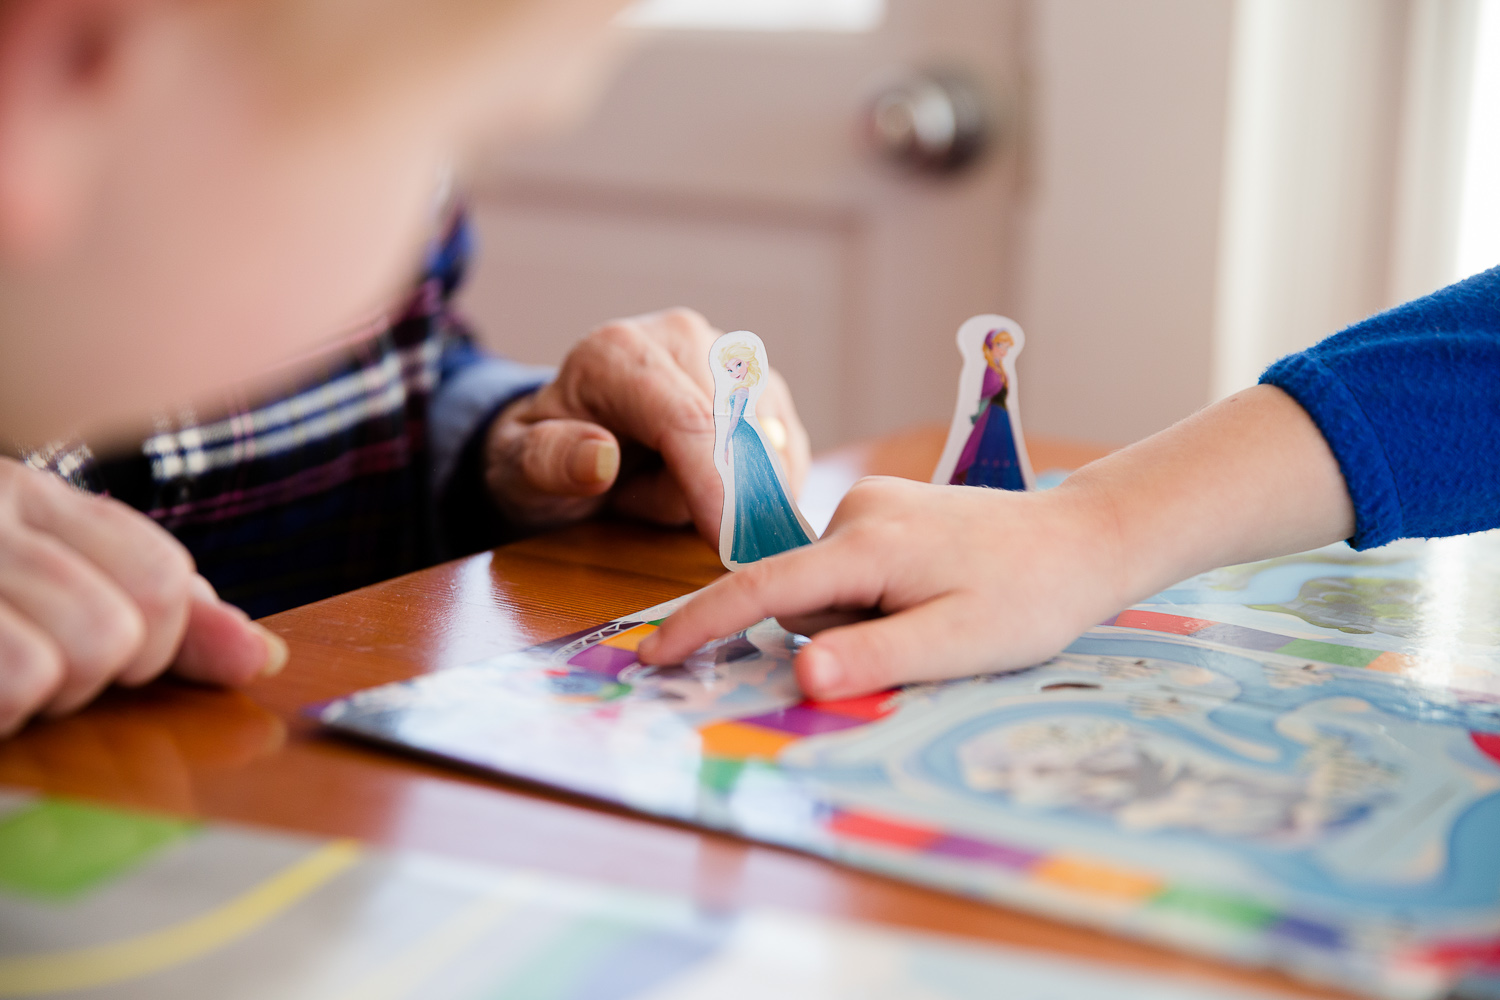 Playing-Boardgame-with-Grandkids-ss-7.jpg